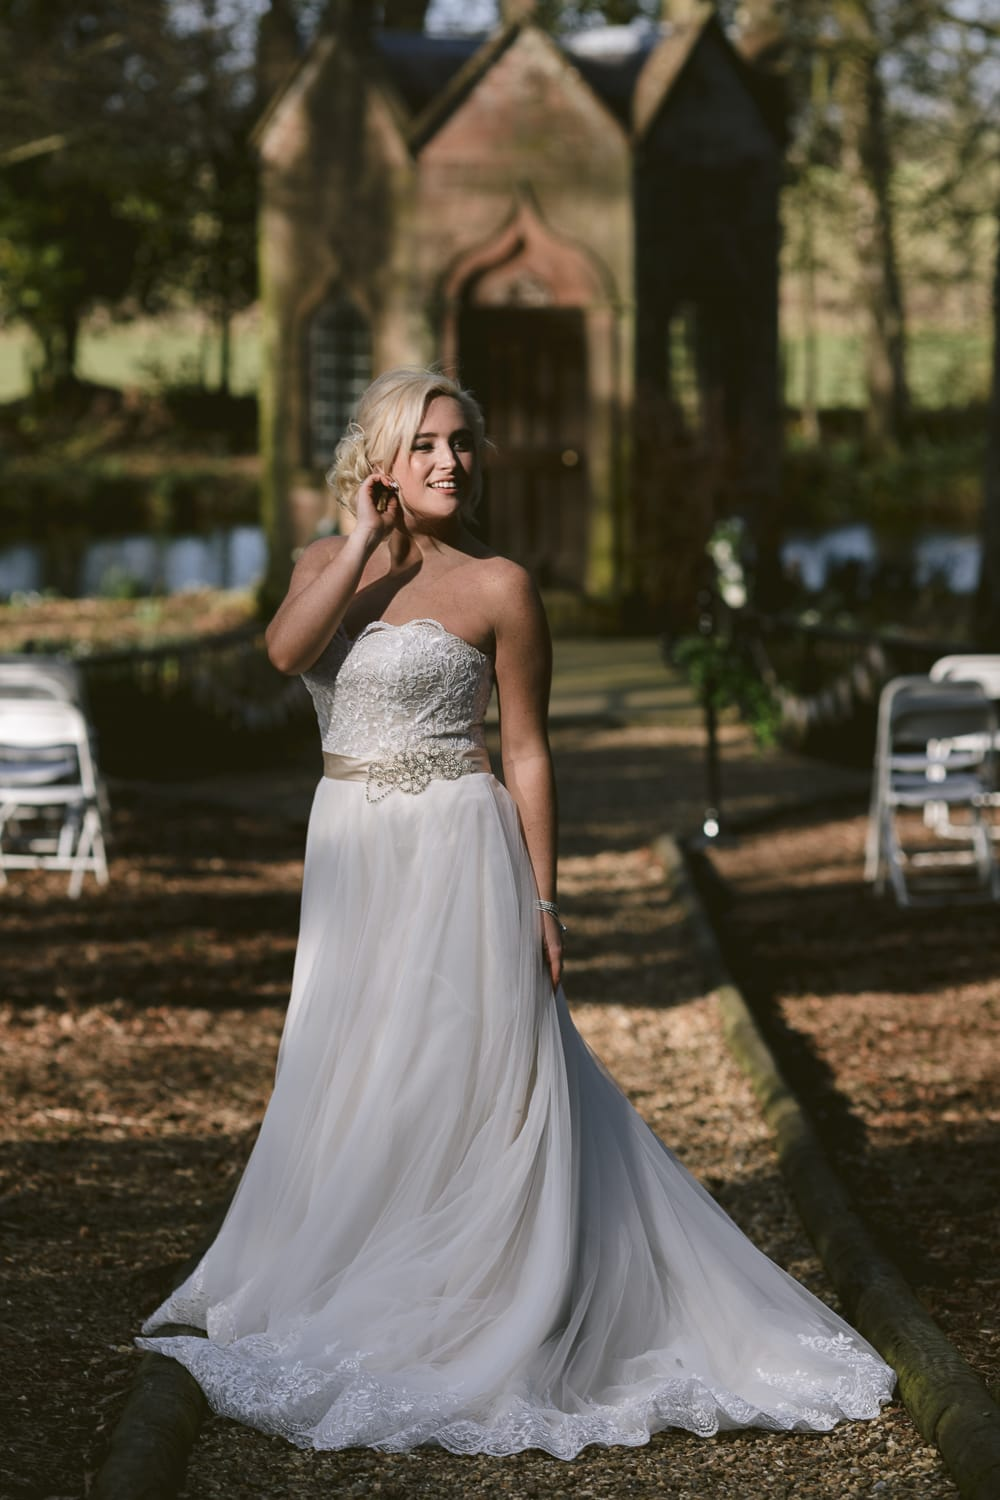 Bridal Wishes Exclusive Georgie-Mae Bridal Photoshoot